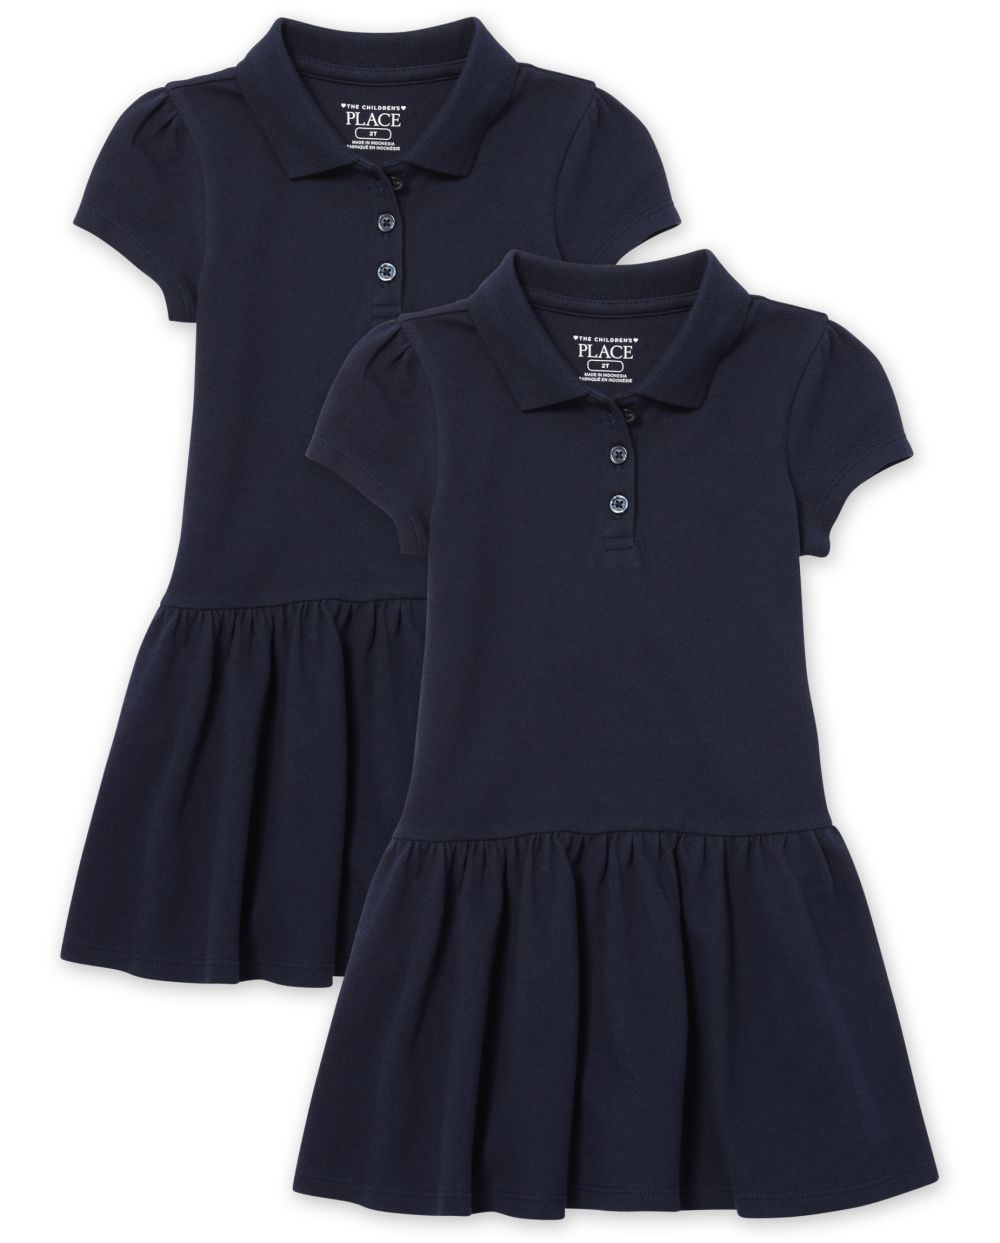 Toddler Dress With Ruffles